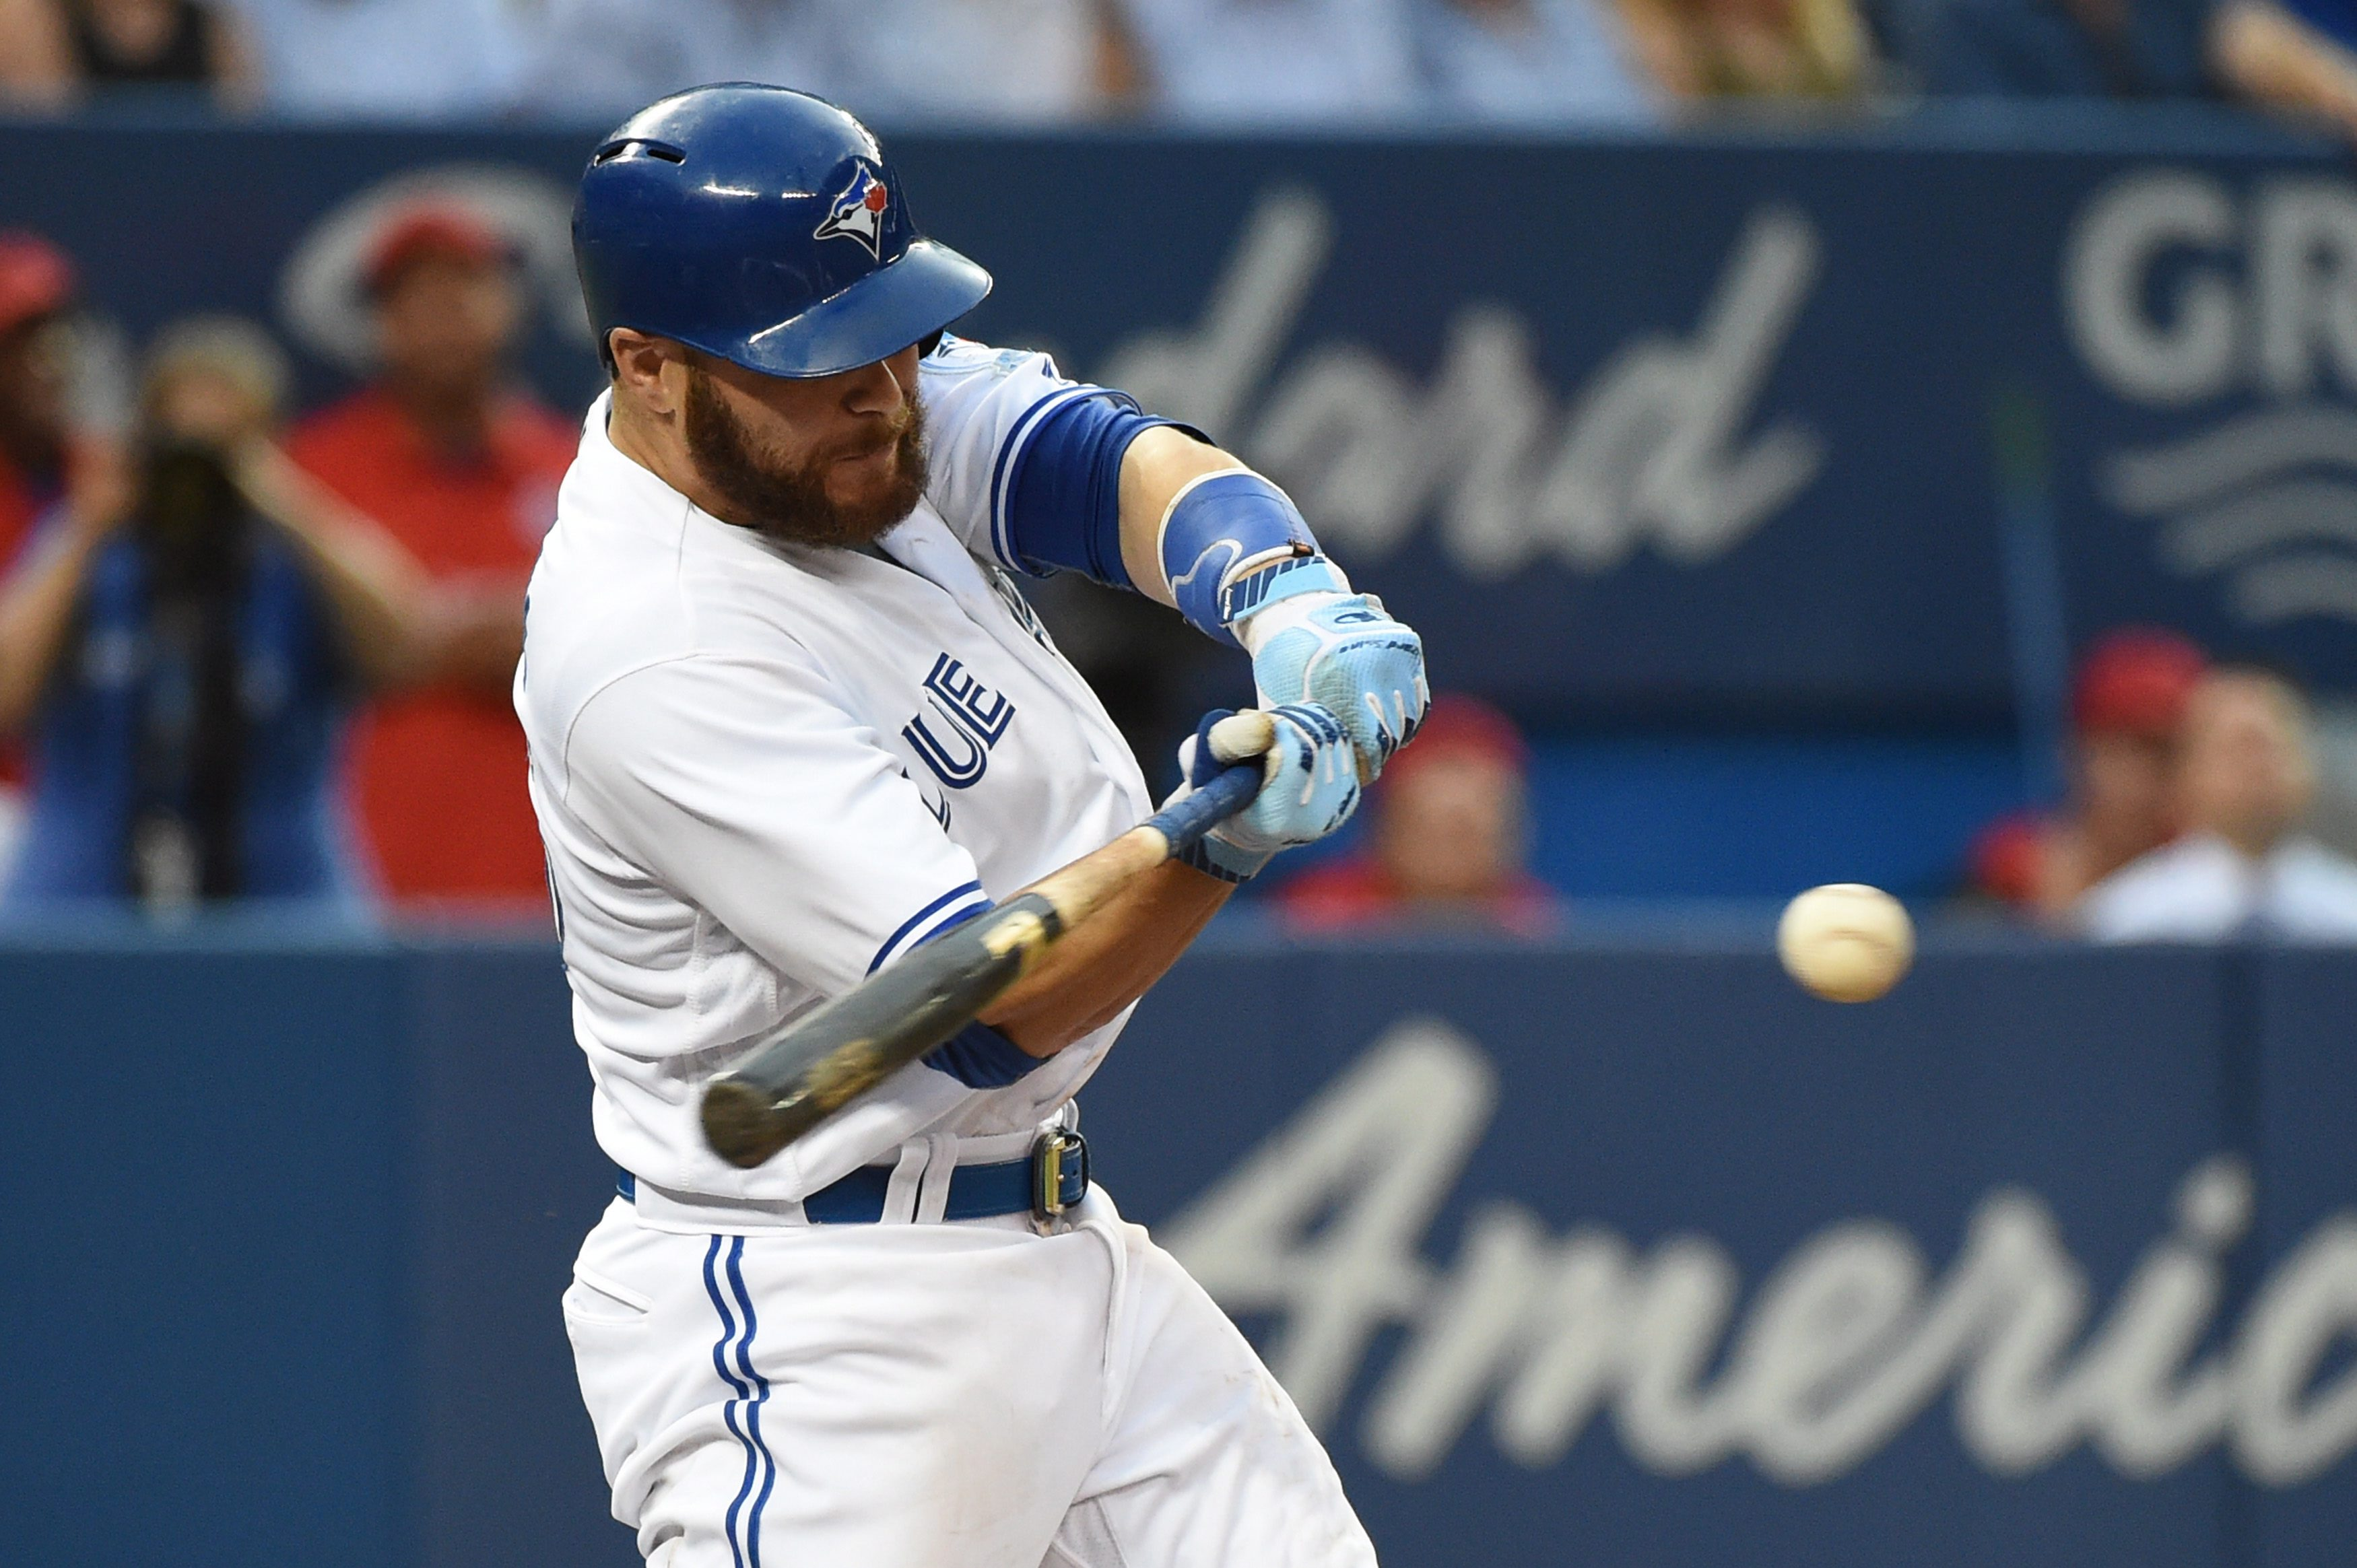 Toronto Blue Jays' Russell Martin hits an RBI single against the Baltimore Orioles during the third inning of a baseball game Friday, July 29, 2016, in Toronto. (Jon Blacker/The Canadian Press via AP)